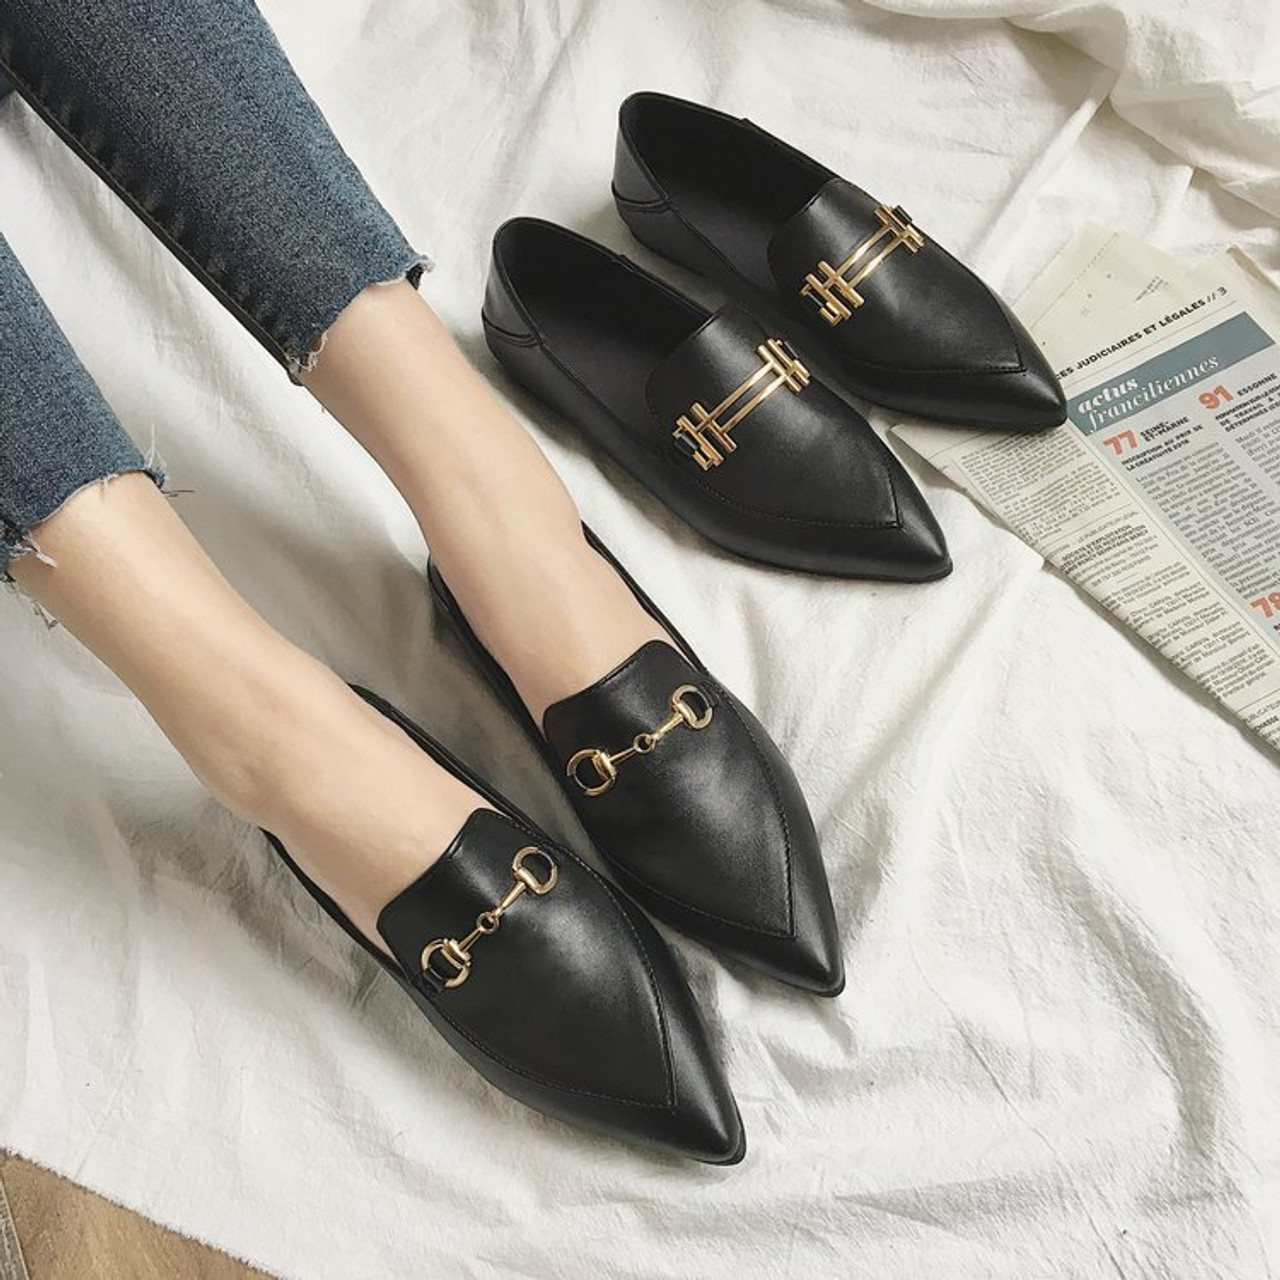 2d61a35e7 ... Korean fashion flat shoes women spring autumn new pointed toe sexy  vintage black casual shoes slip ...